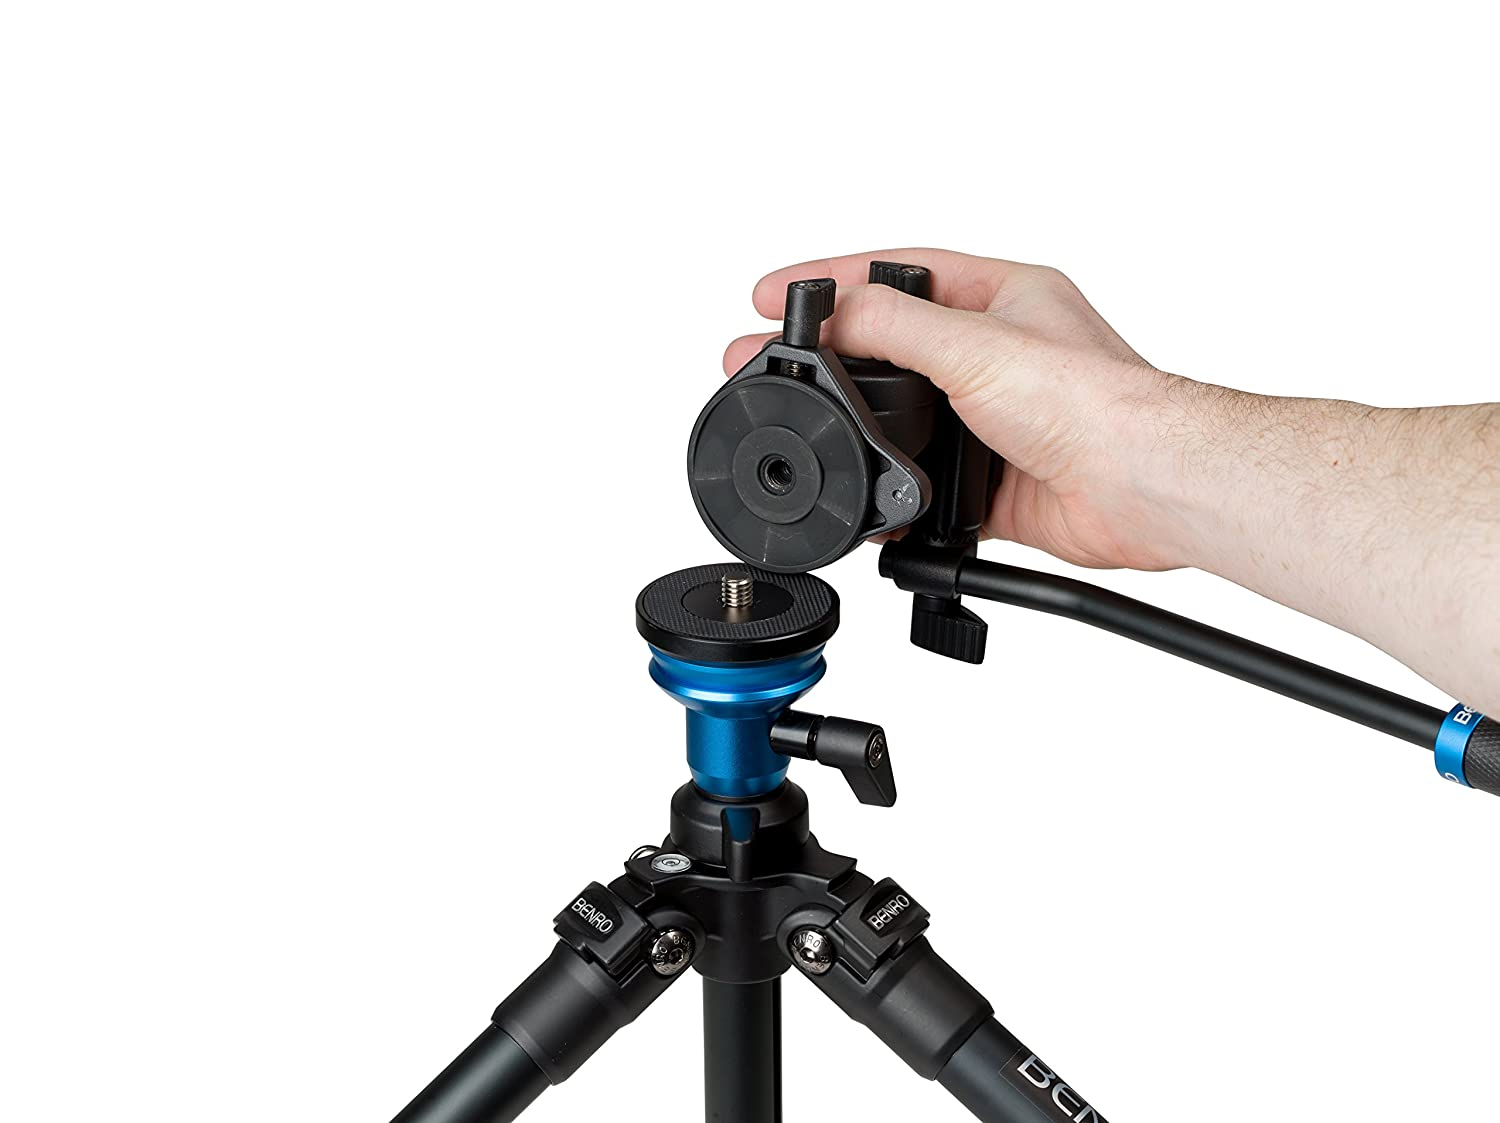 Benro S2 Video Head And Aluminum Flip Lock Legs Kit A1883fs2c Aero 2 Travel Angel Tripod A1573fs2 Camera Photo